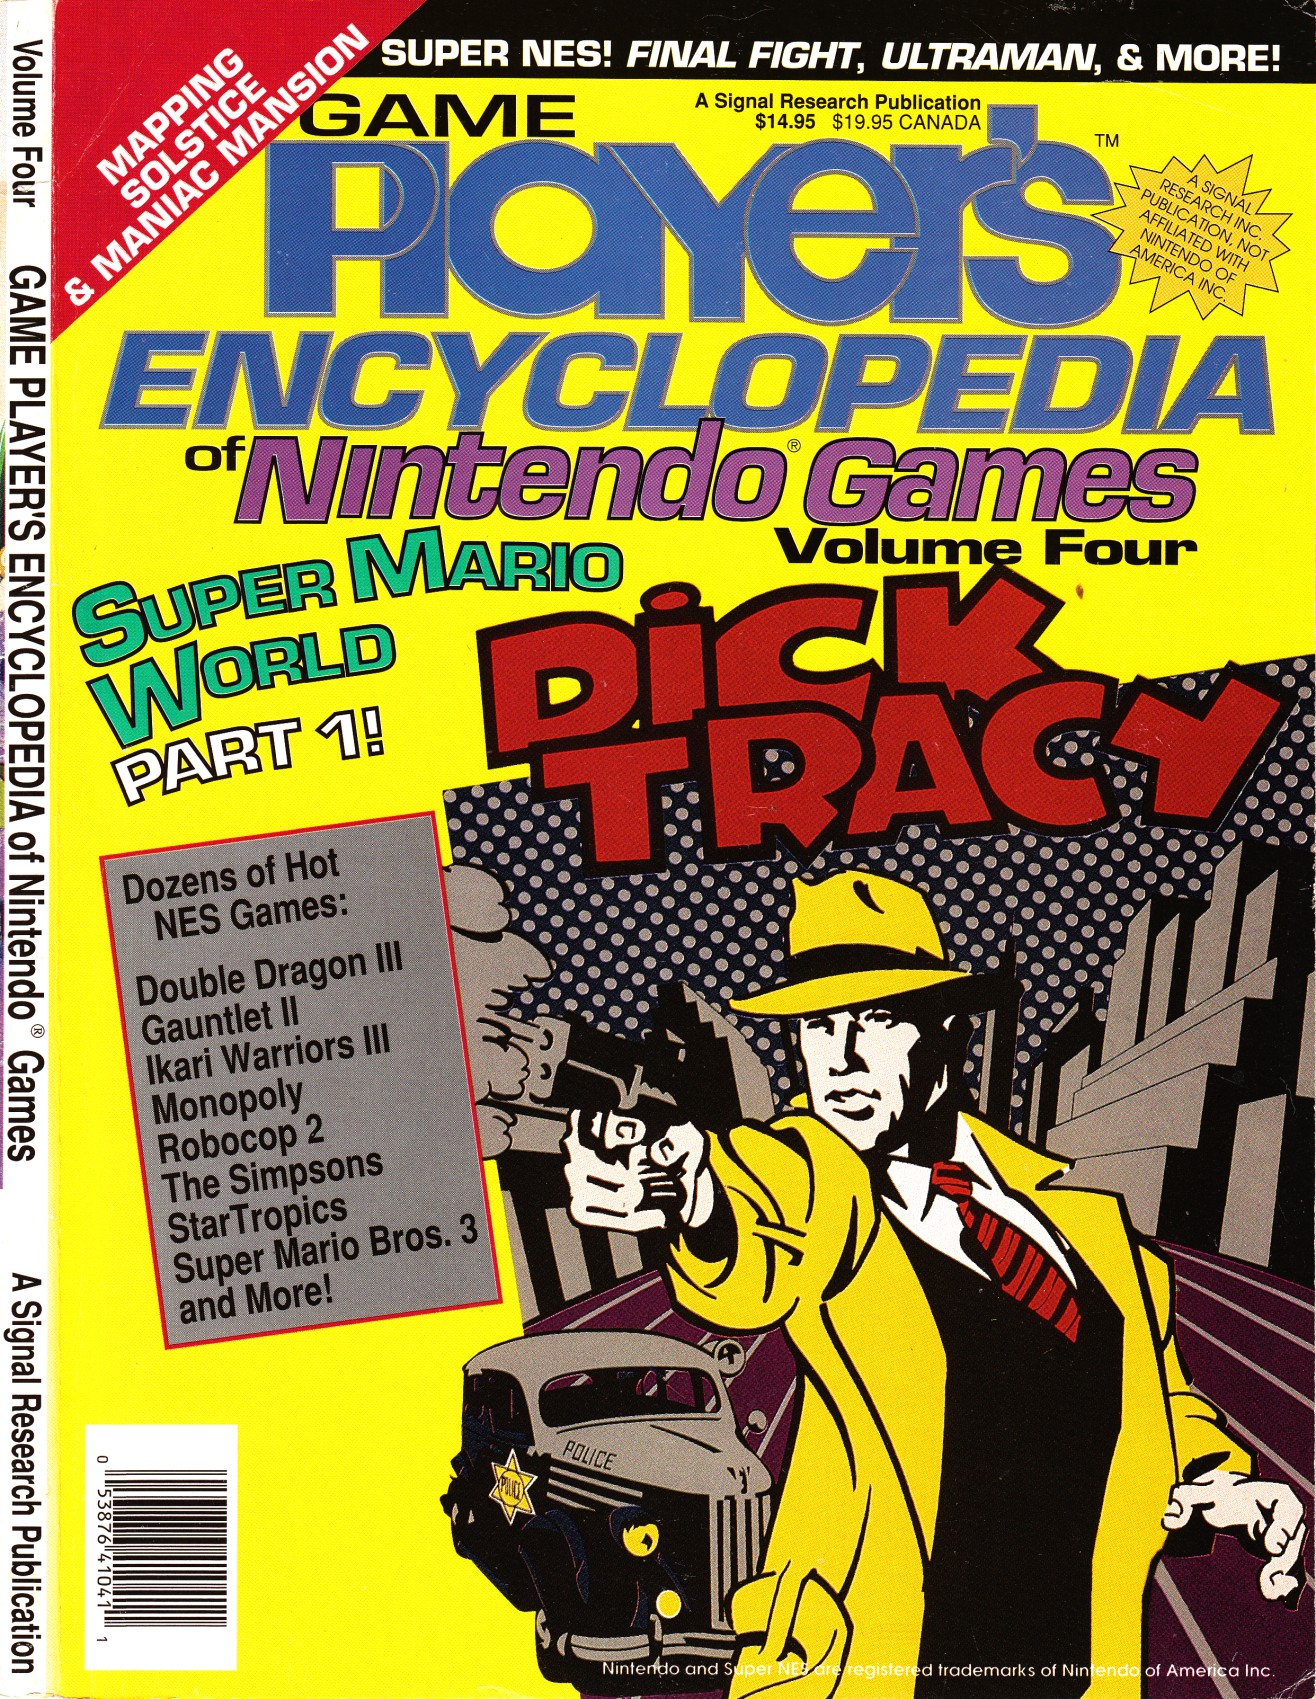 Game_Player's_Encyclopedia_of_Nintendo_Games_Volume_4_001